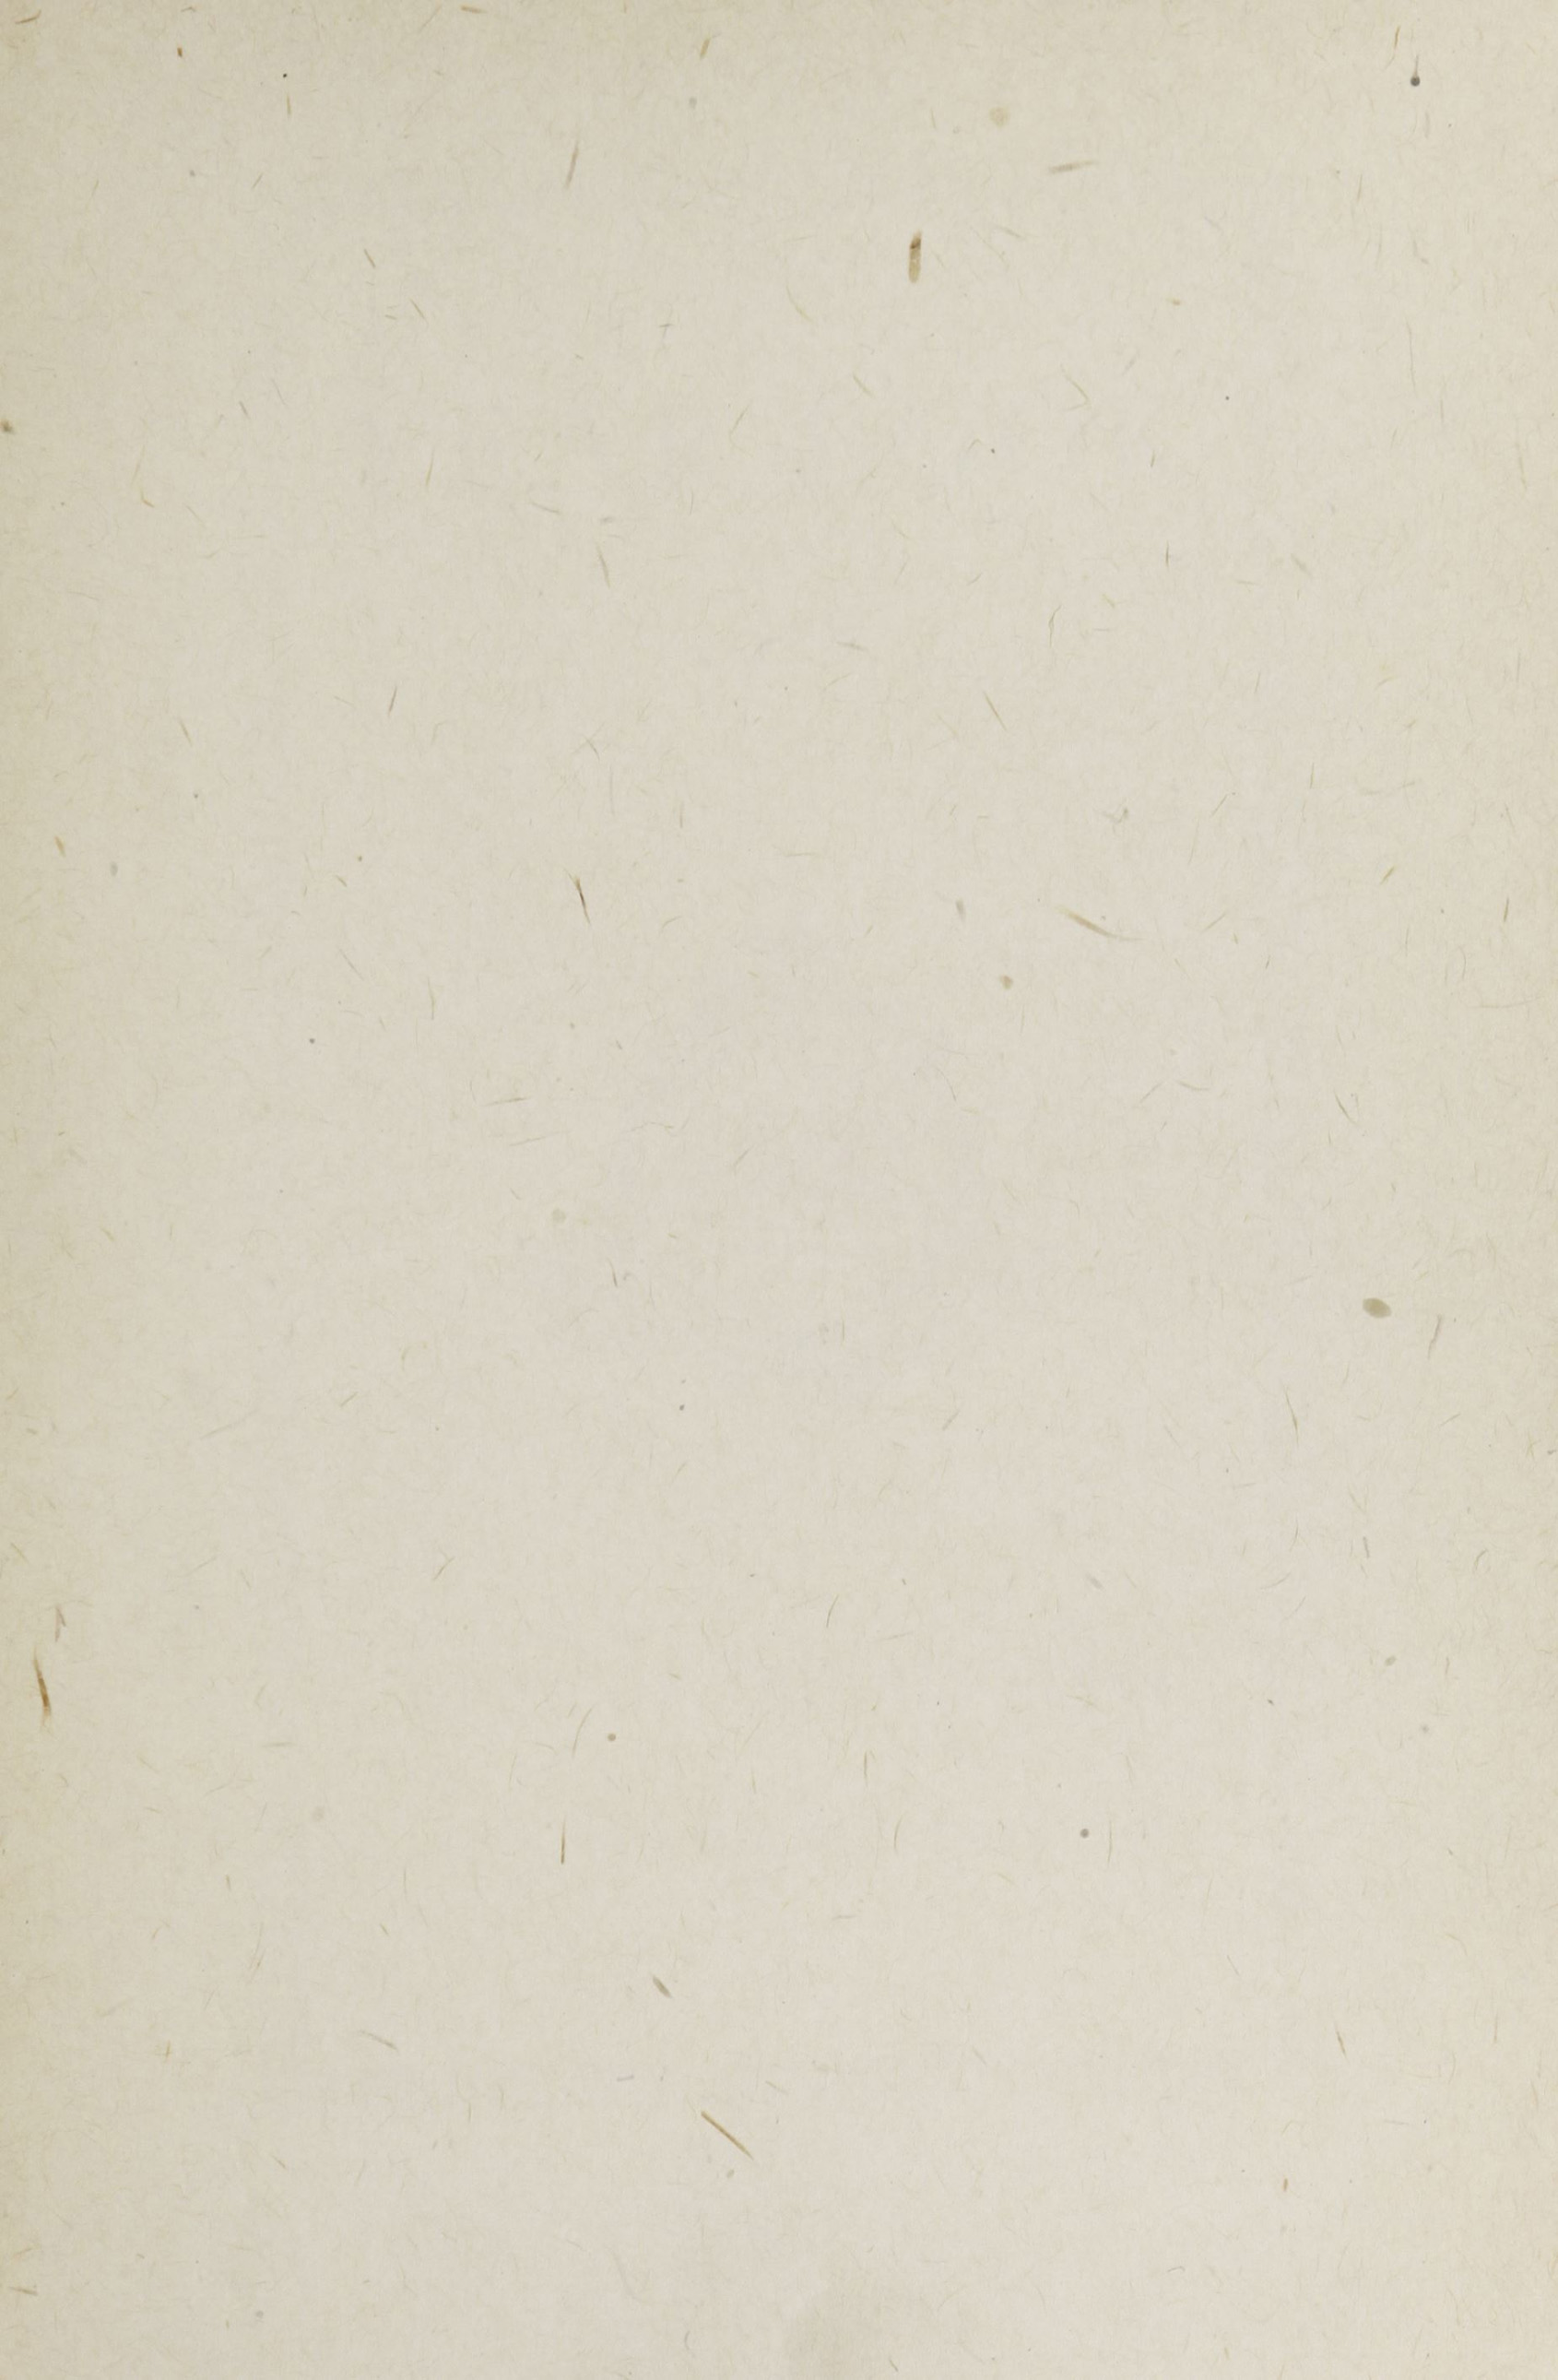 Charleston Yearbook, 1918, blank page